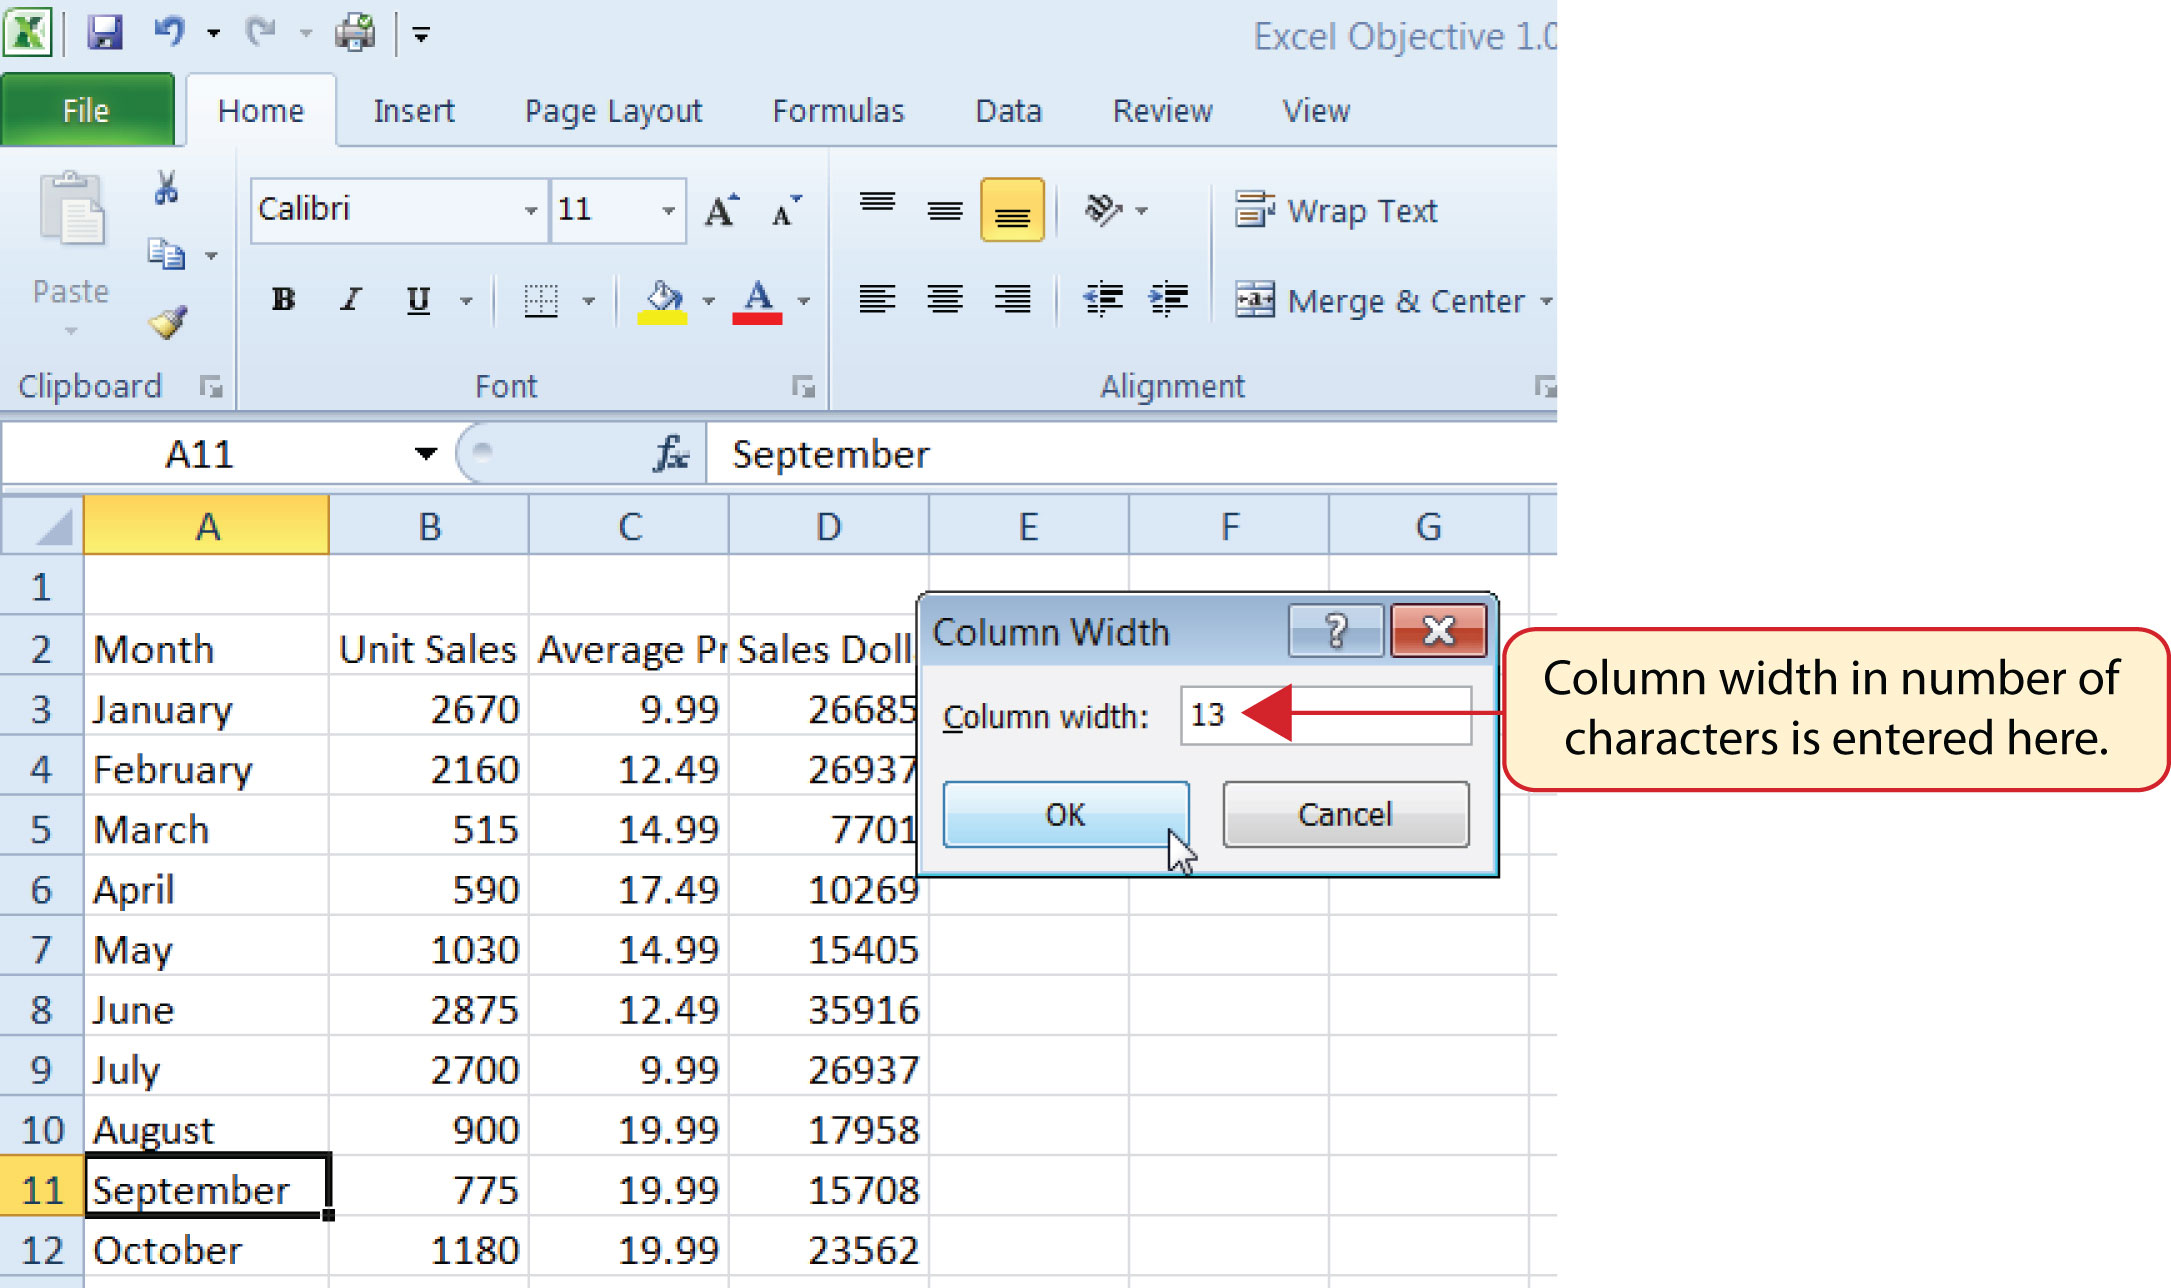 Excel Tips & Solutions Since - MrExcel Publishing